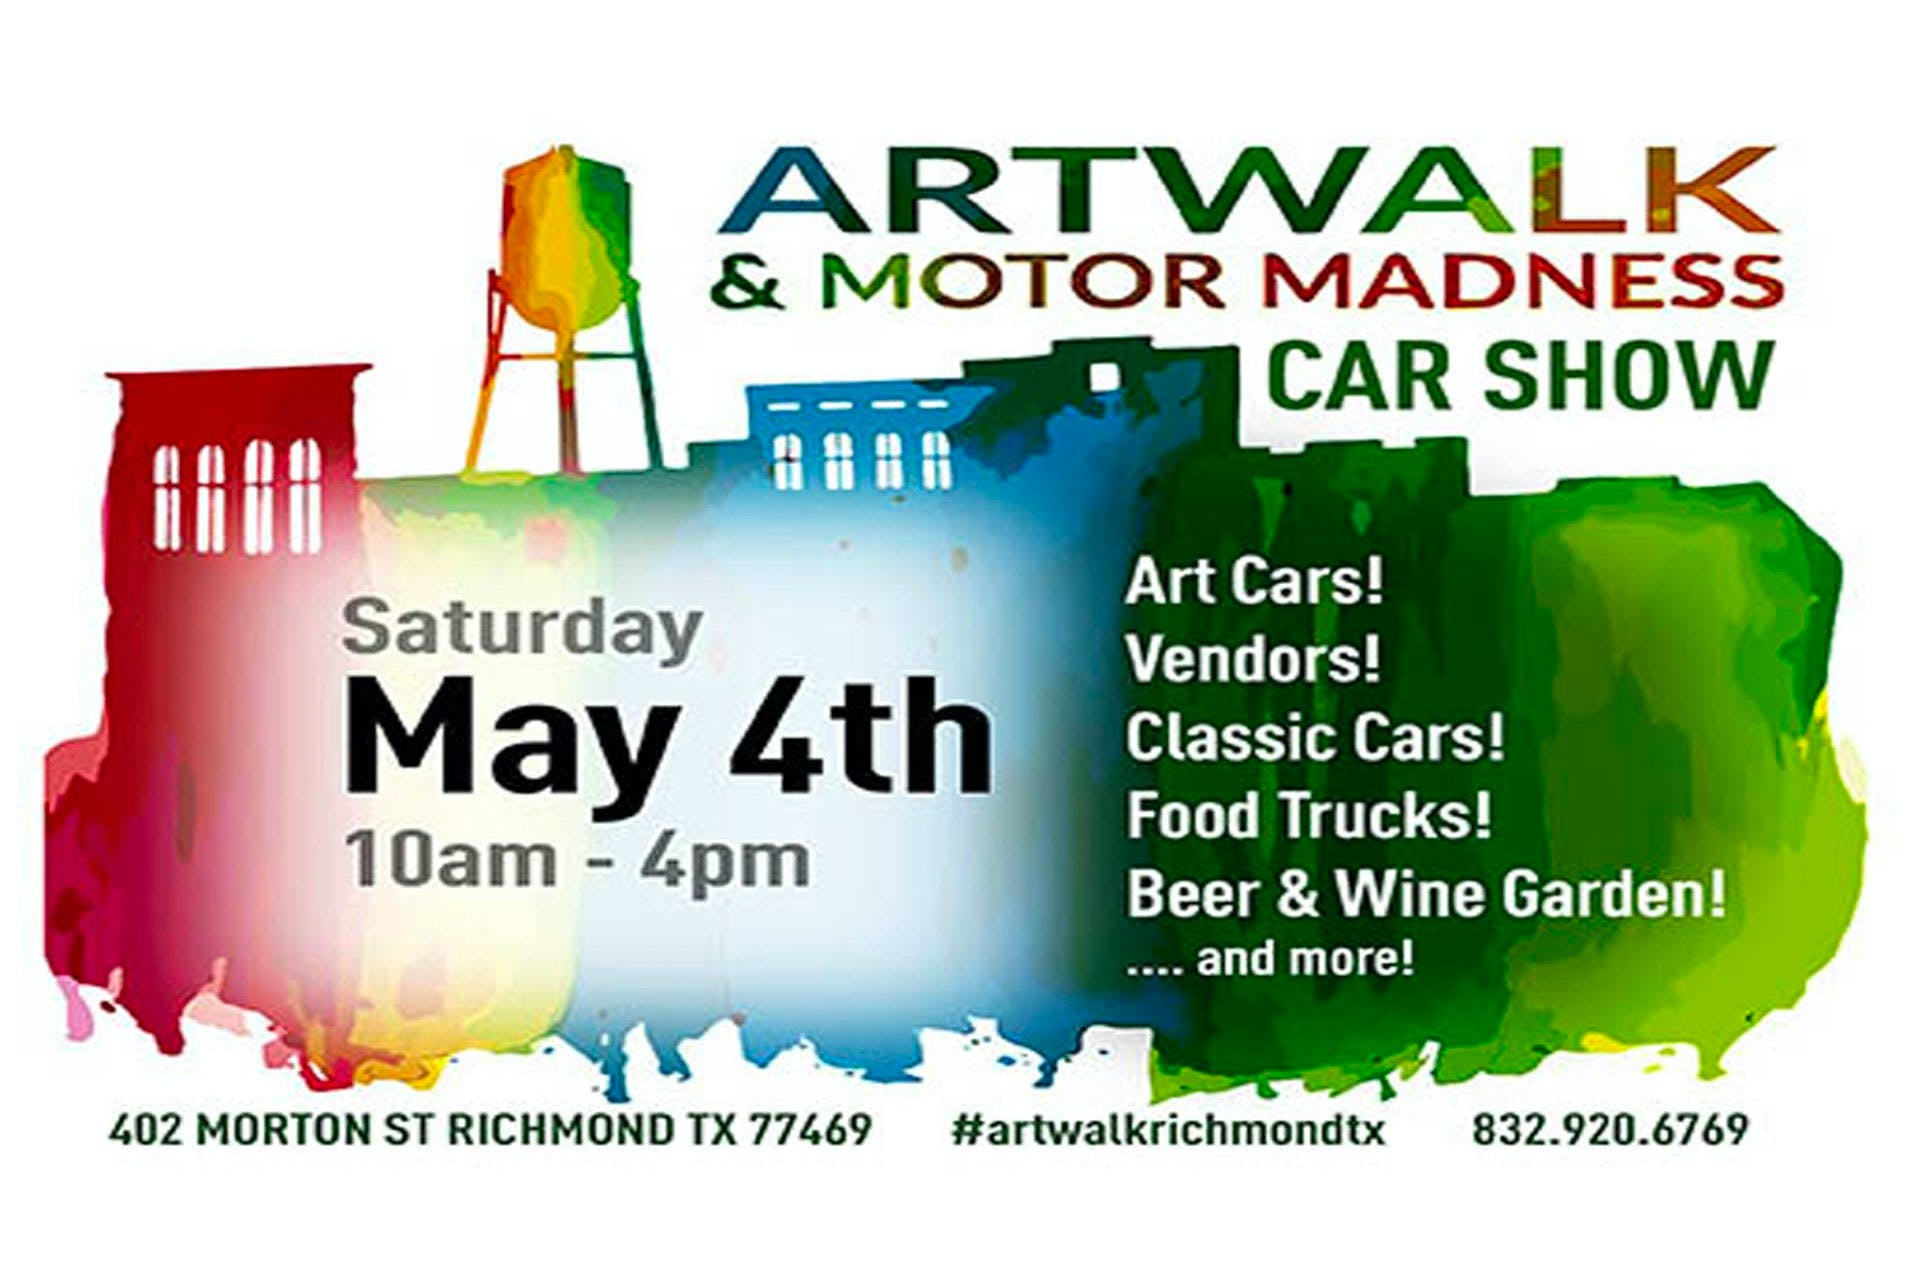 art-walk-and-motor-madness-car-show-richmond-tx